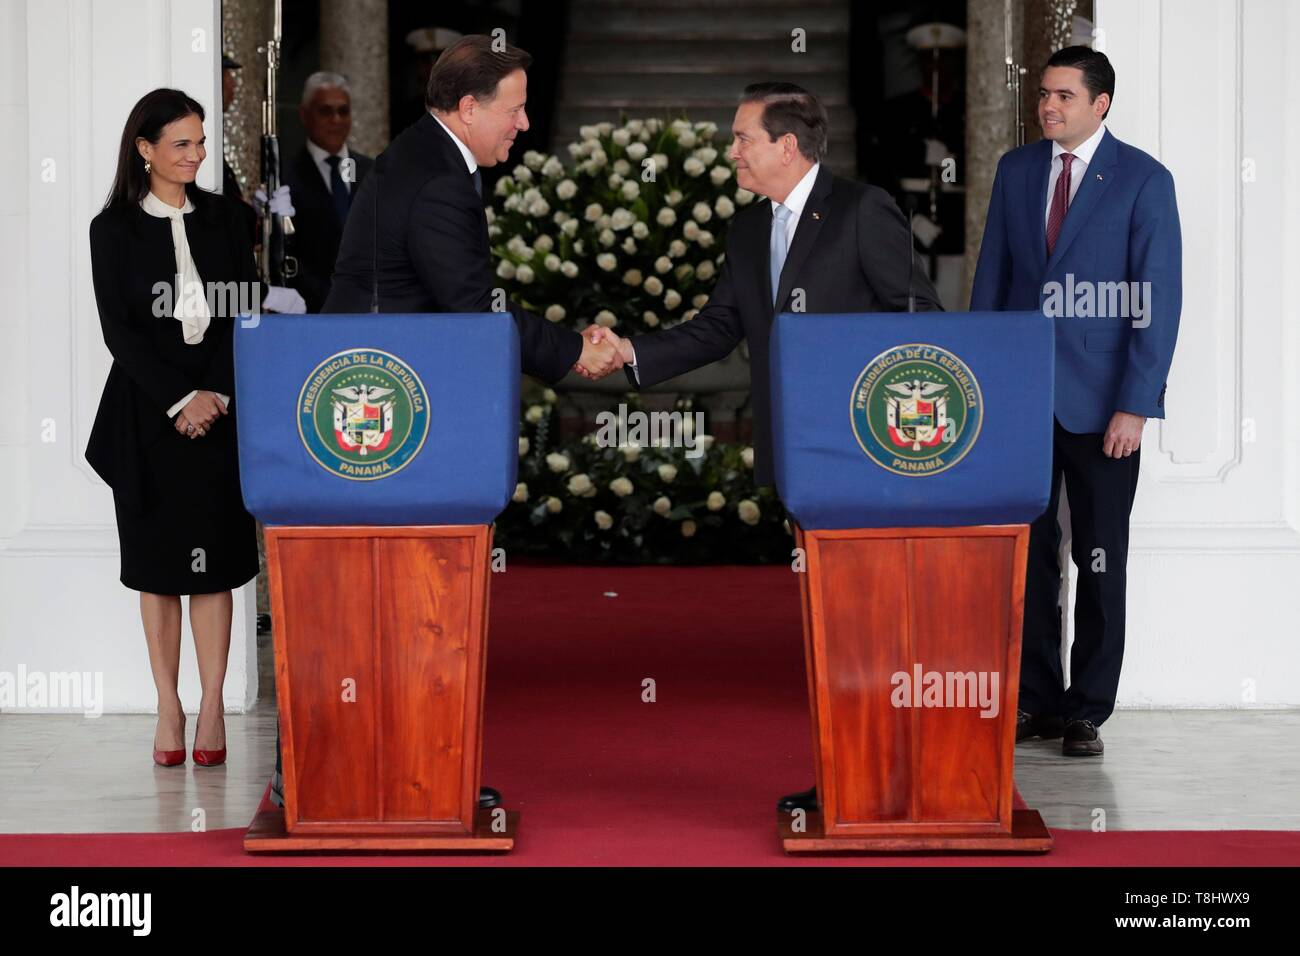 Panama's President Juan Carlos Varela (L) shakes hands with the elect President Laurentino Cortizo (R) after a meeting of command handover at the Presidential Palace, in Panama City, Panama, on 13 May 2019. EFE/Bienvenido Velasco Stock Photo